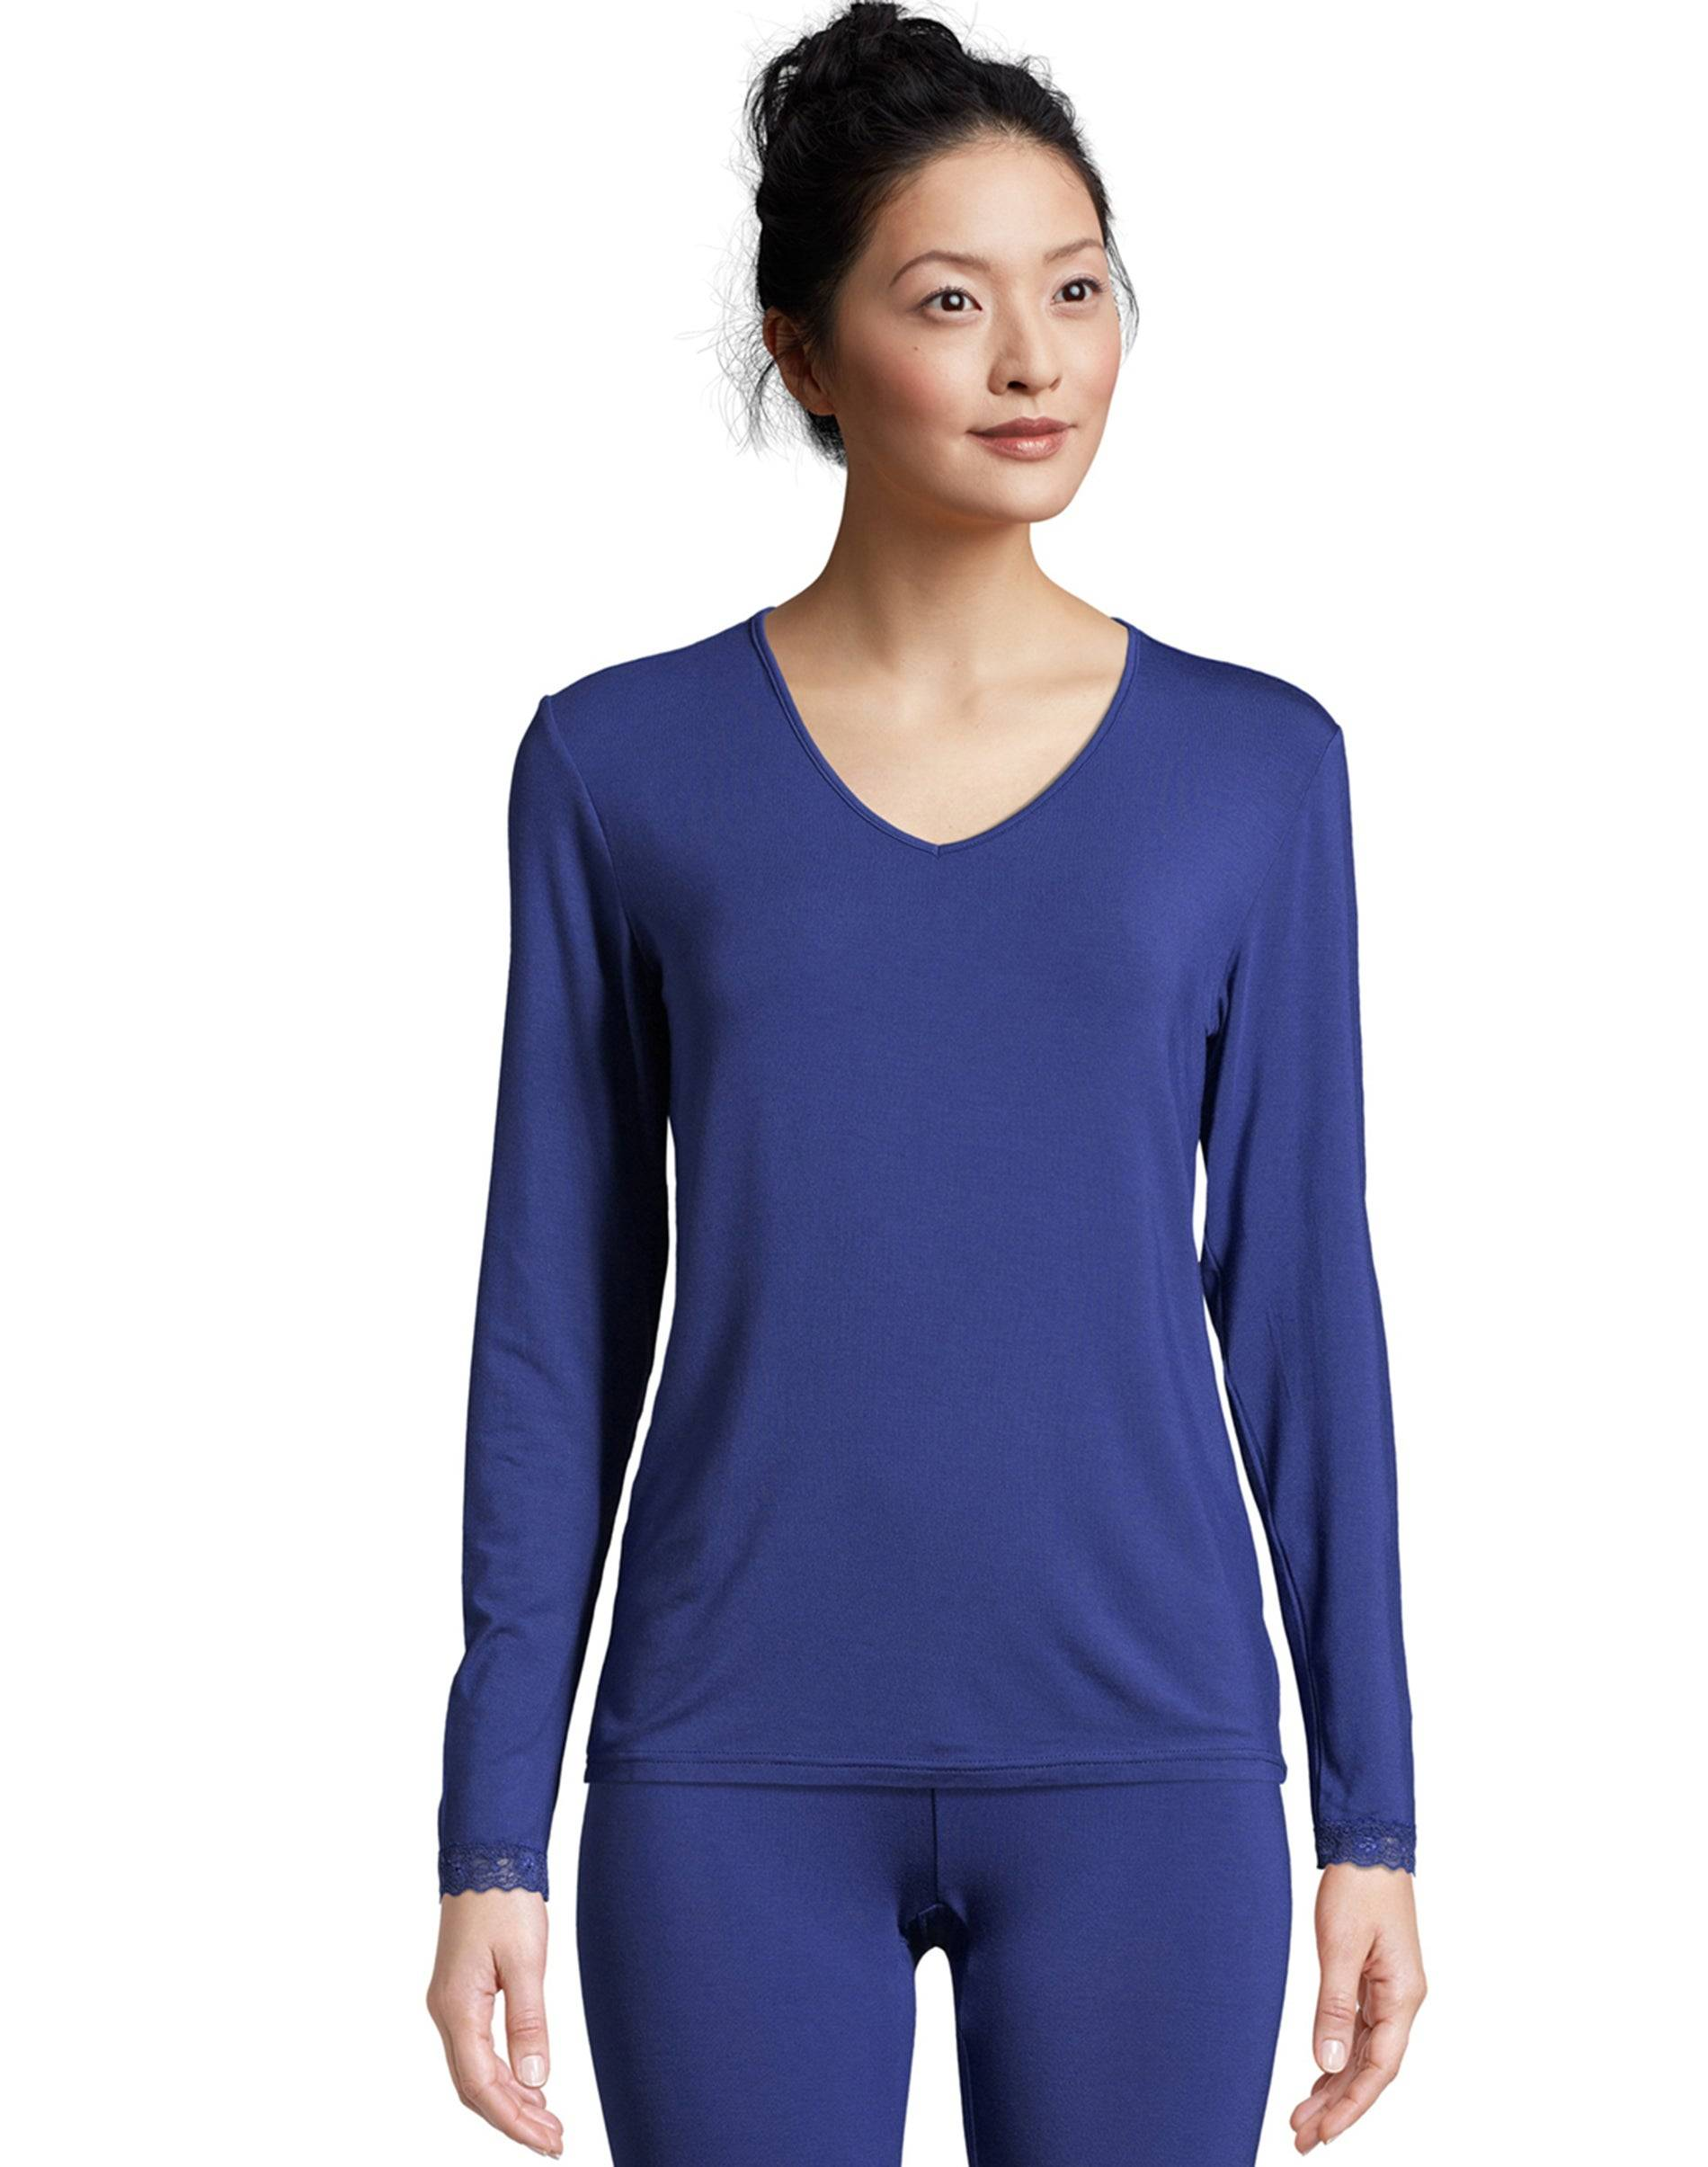 Hanes Women's Comfort Collection Thermal Top Blue S